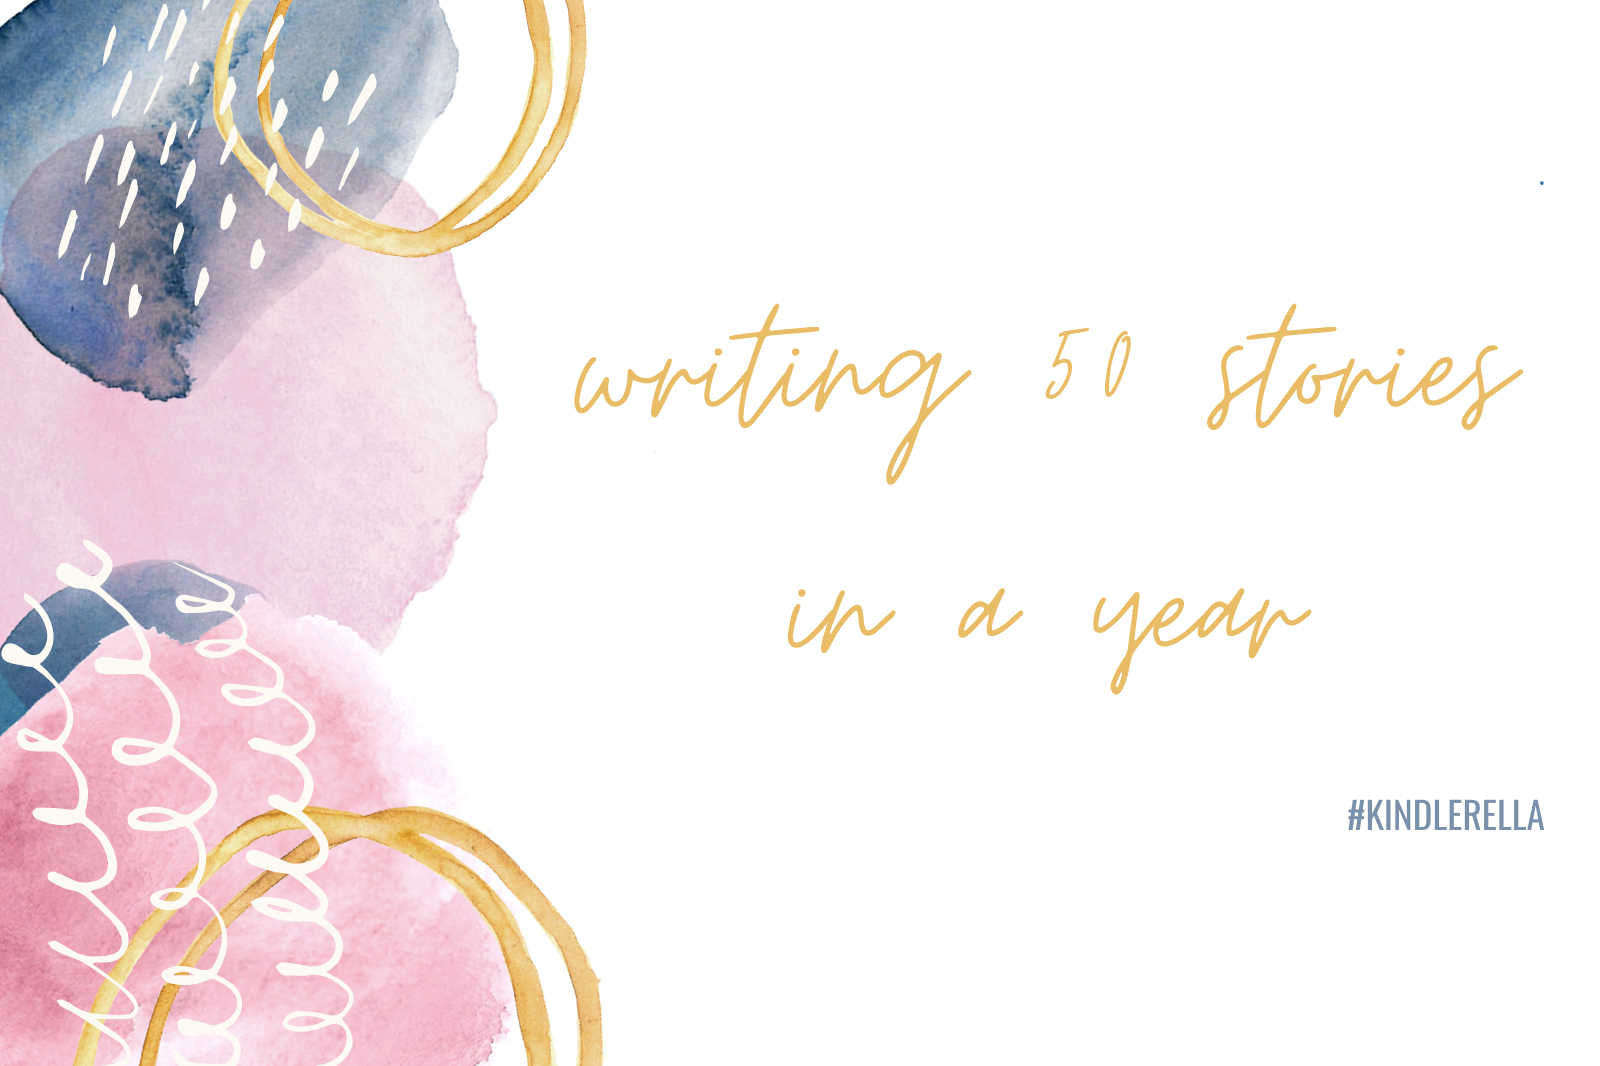 dws method | writing 50 stories in a year